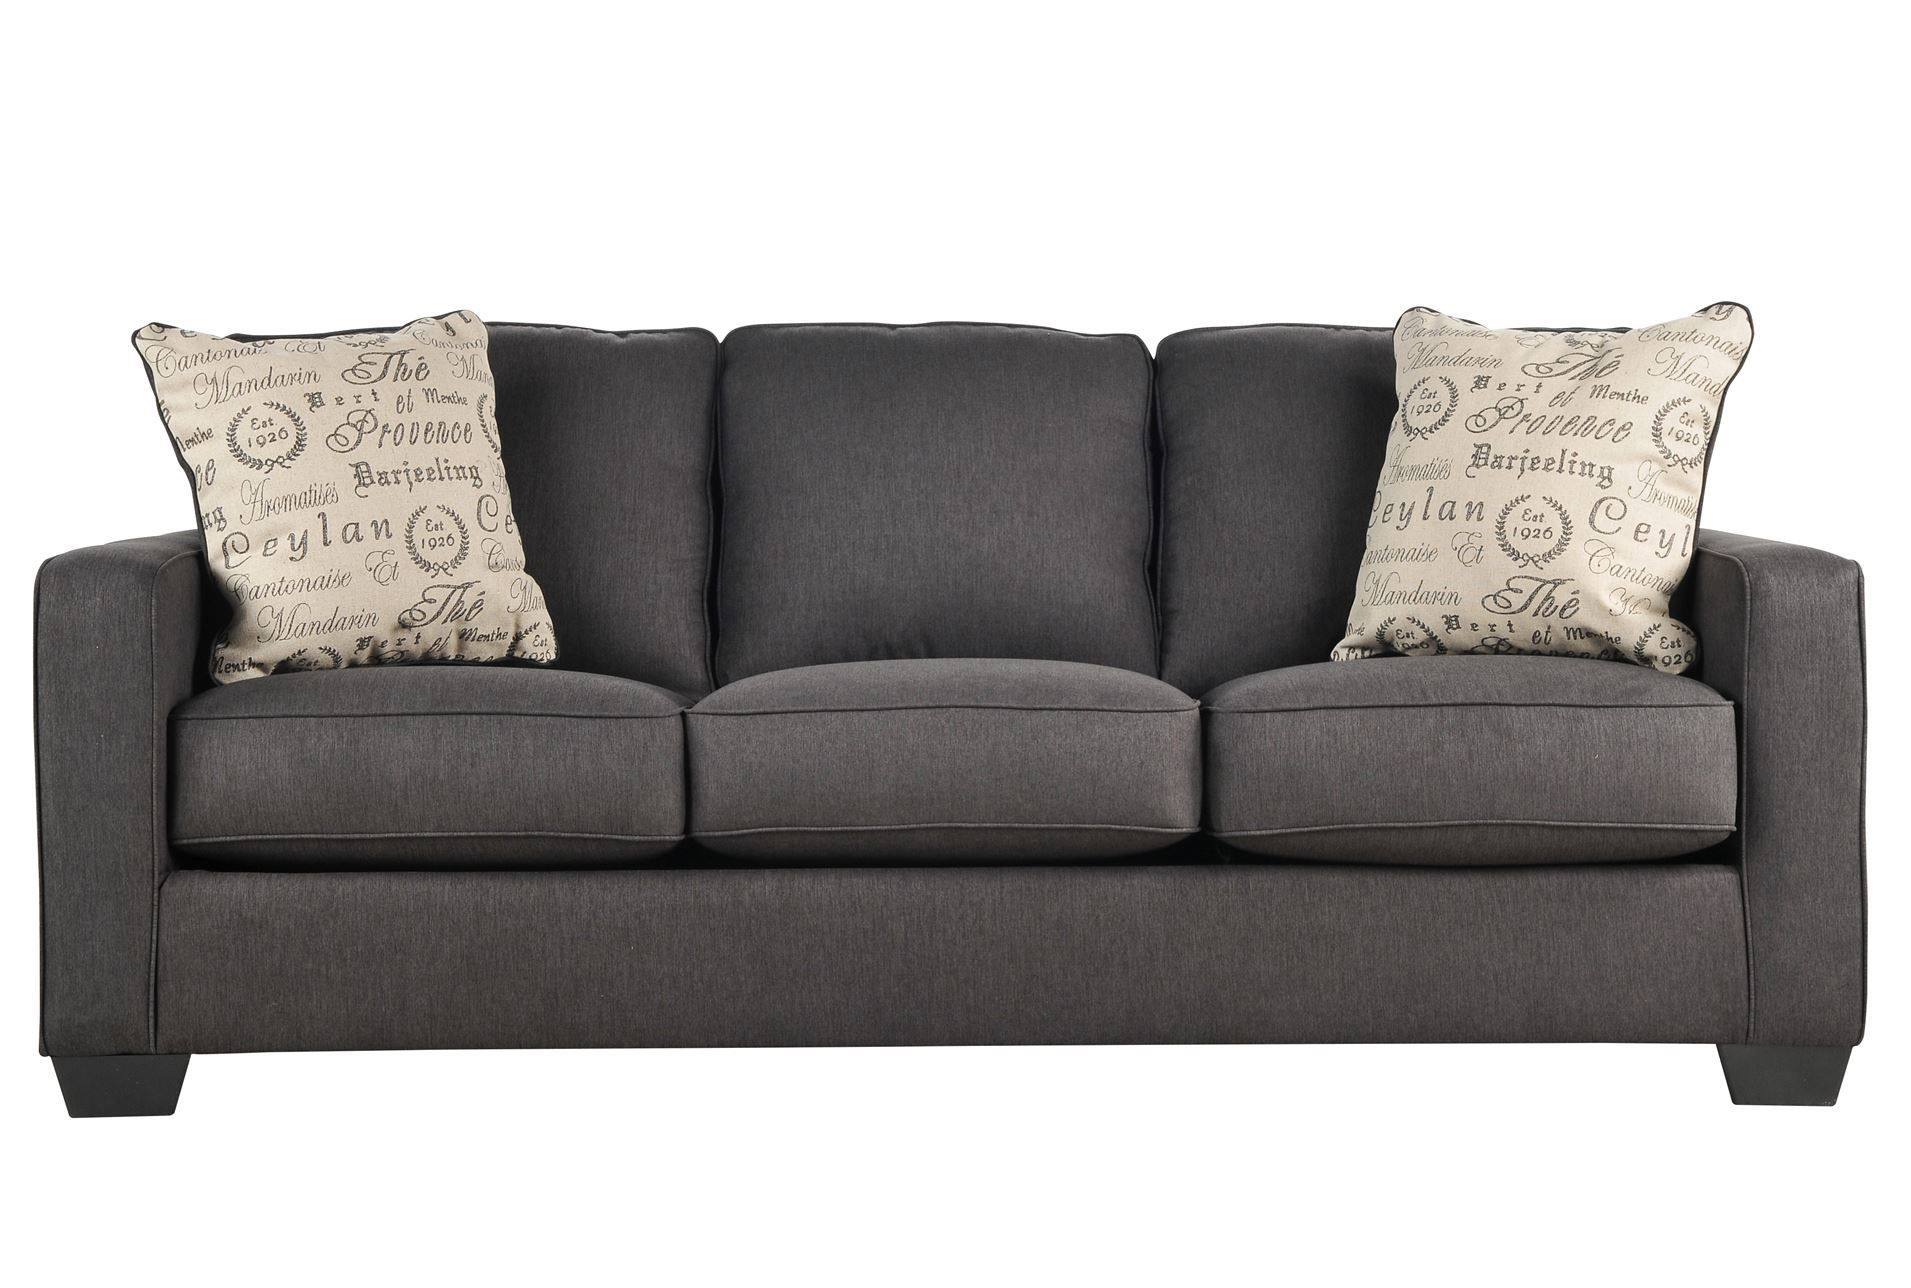 Charcoal Sofa On Pinterest Birch Lane Sleeper And